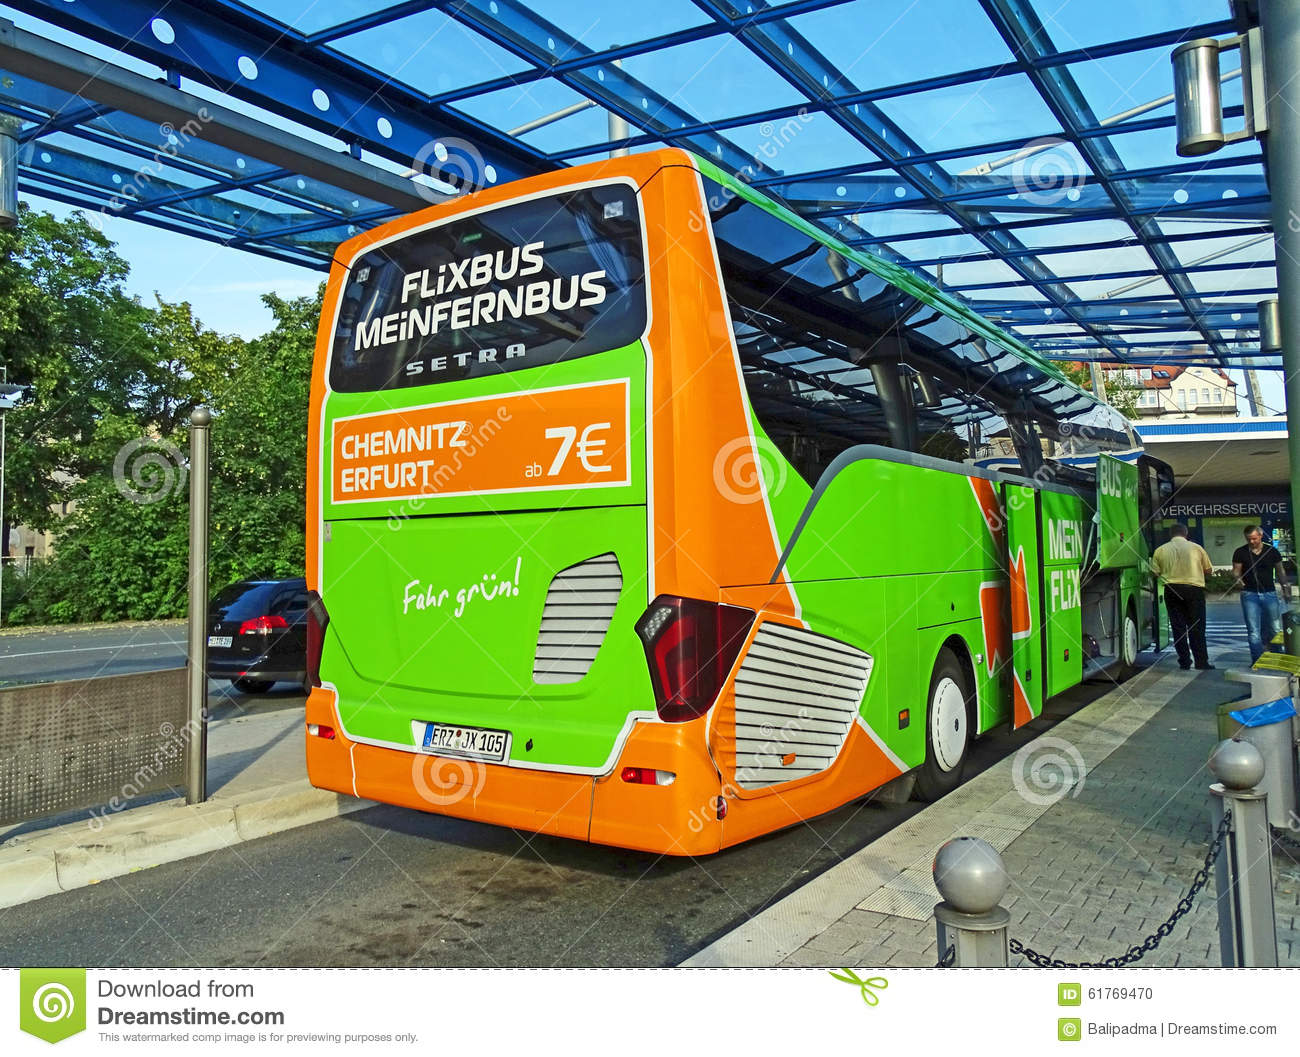 Bus Berlin Erfurt Coach Of Meinfernbus Flixbus In Chemnitz Editorial Image Image